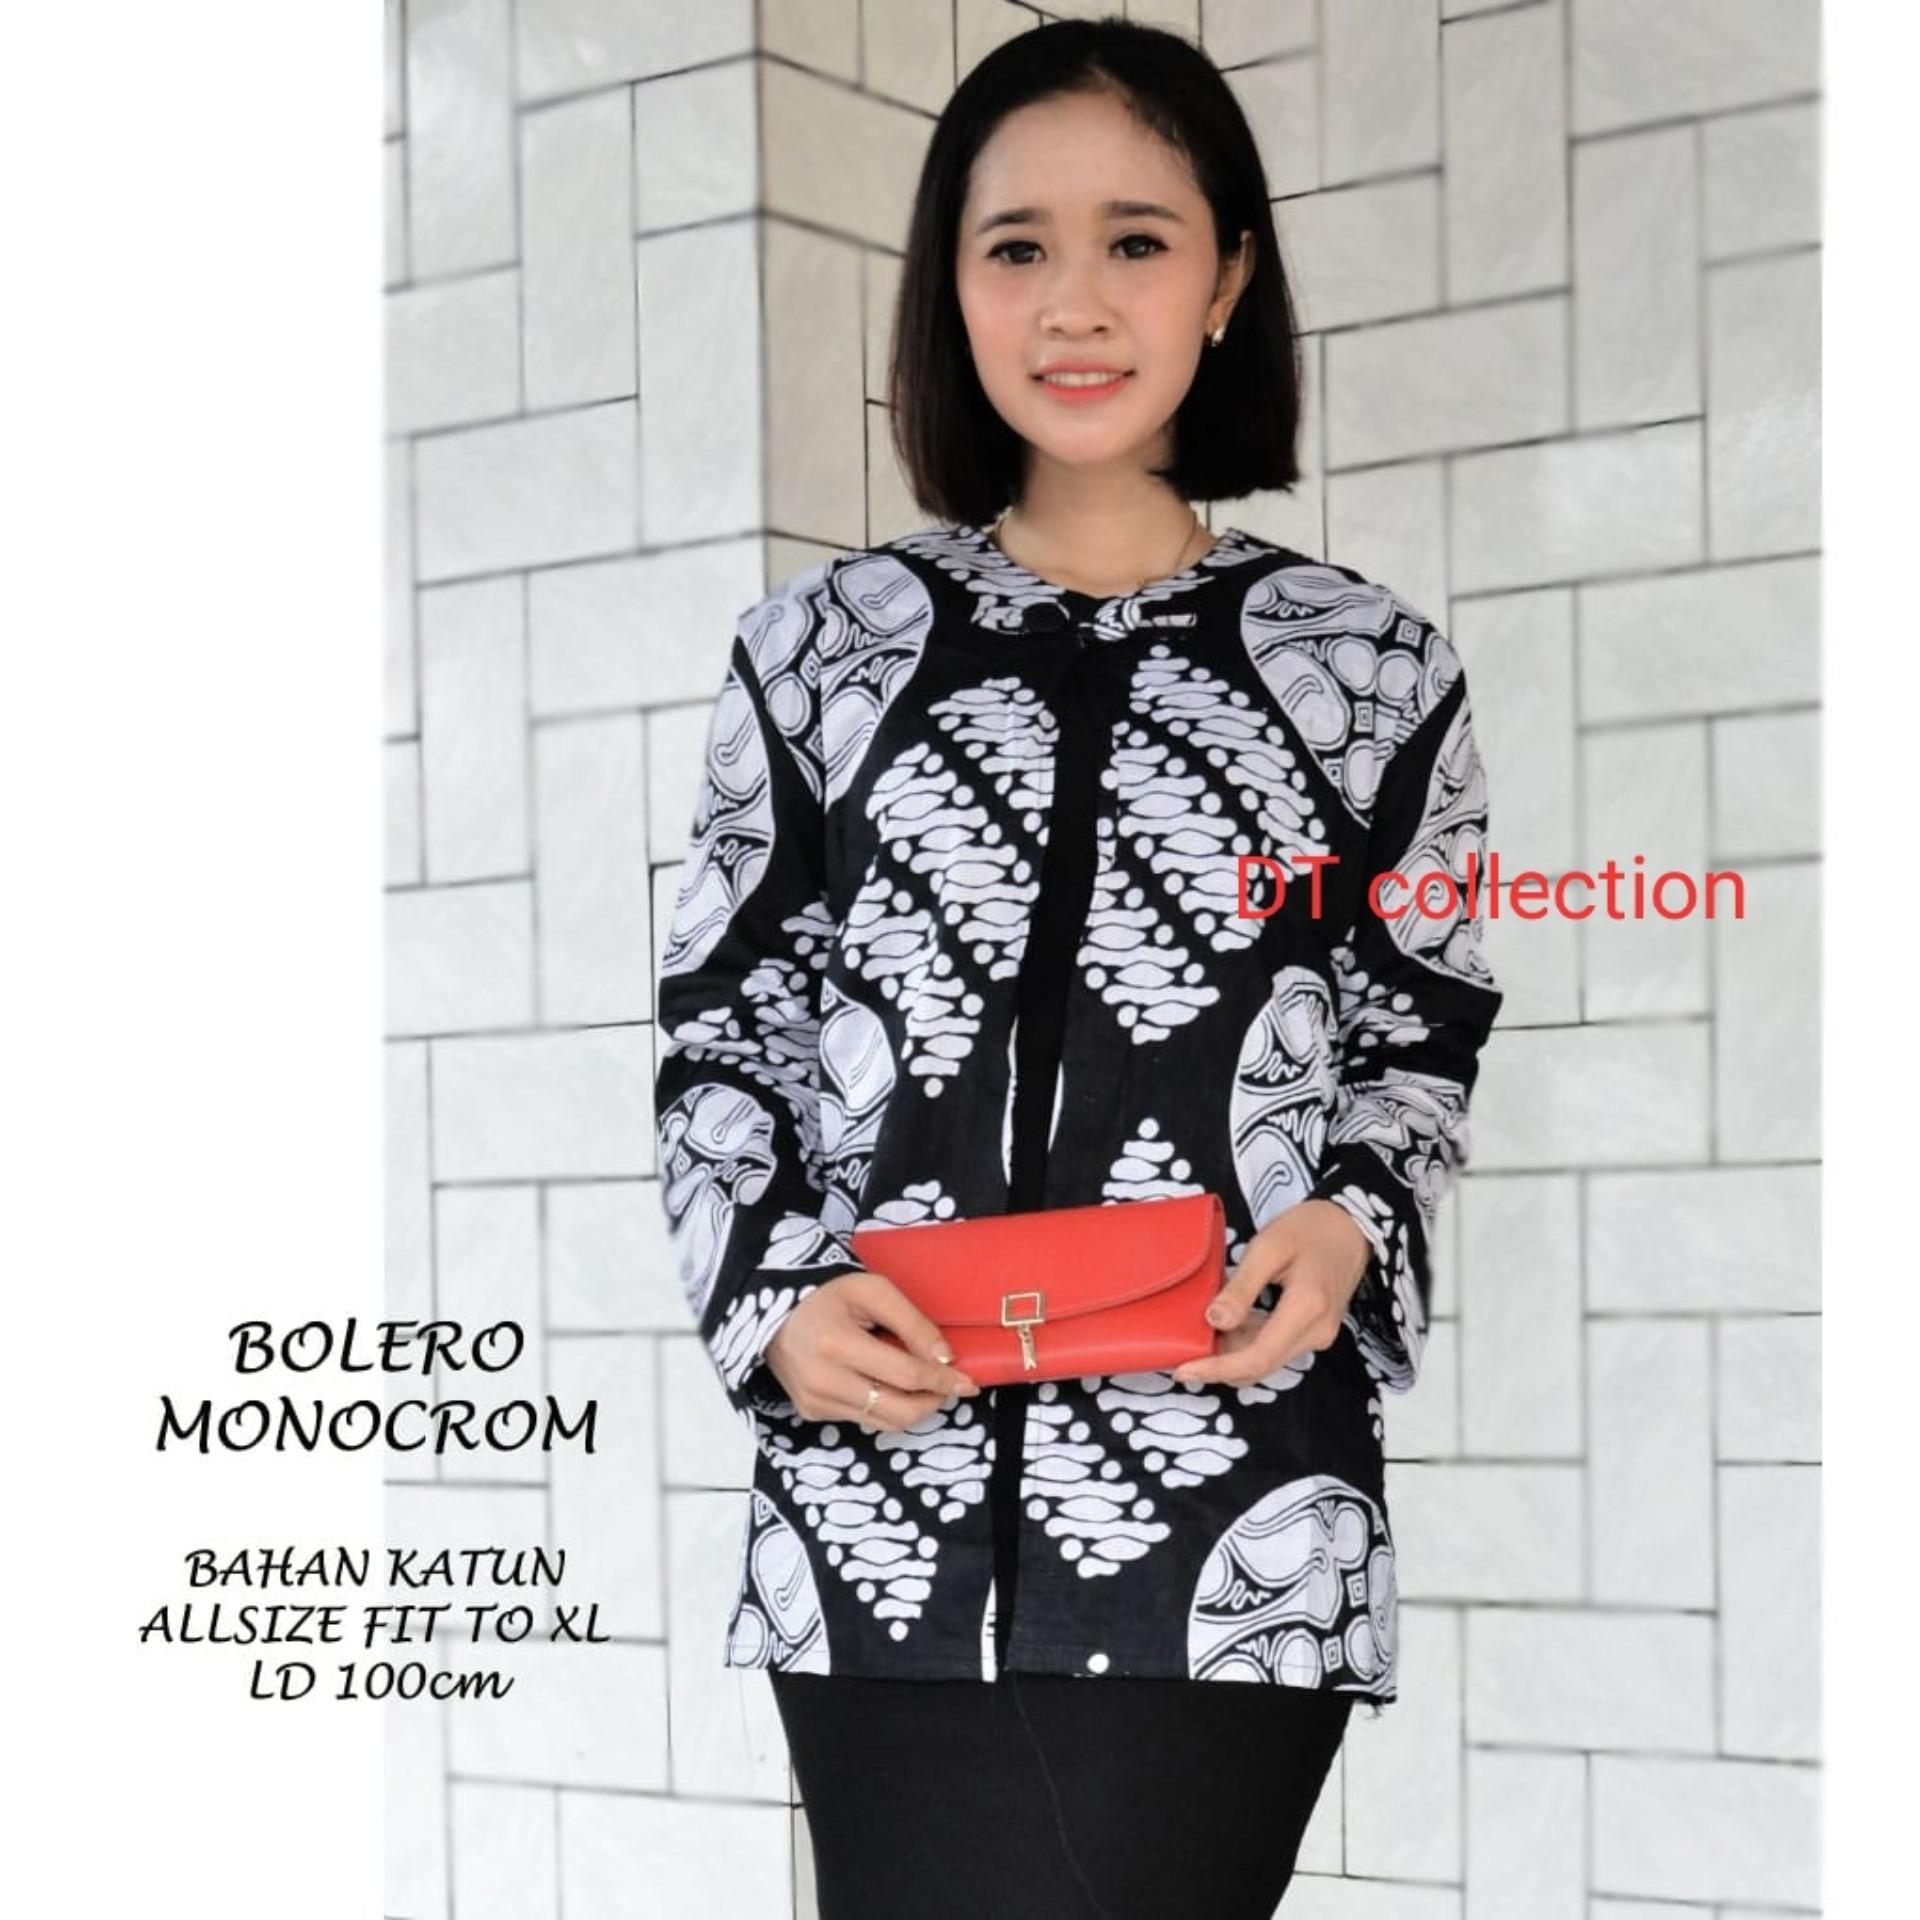 DT COLLECTION BOLERO ATASAN WANITA BATIK PEKALONGAN MOTIF MONOCHOROME